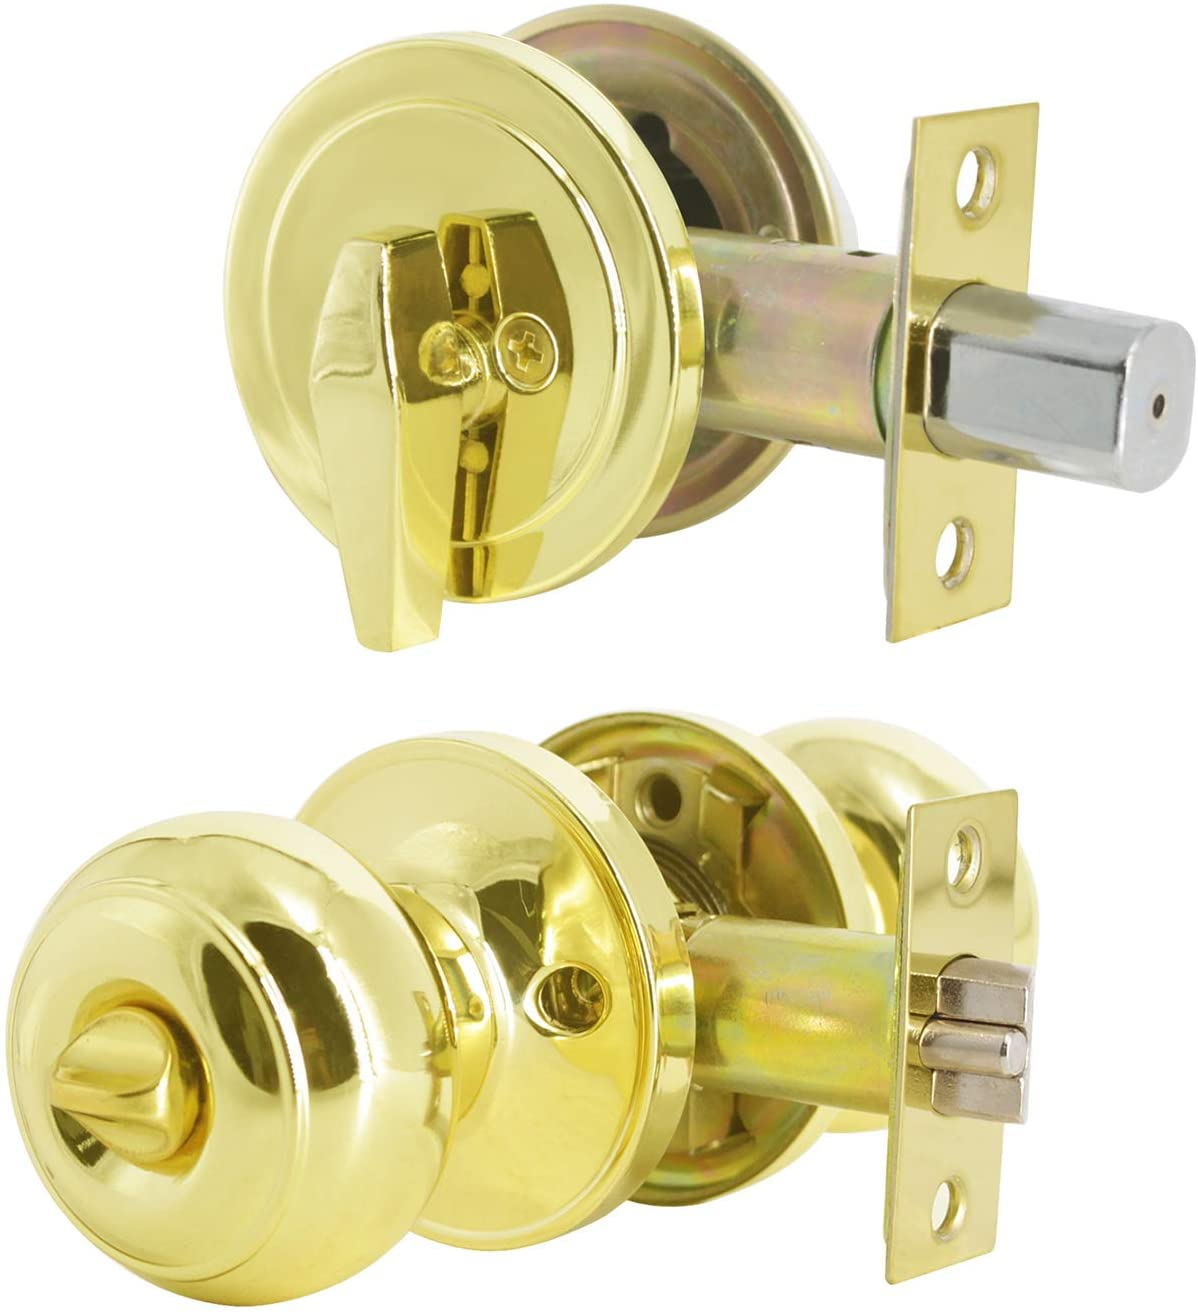 (2 Set) Keyed Alike Front Entry Door Knobs with Single Cylinder Deadbolts Combo Pack, Polished Brass,Combination Set Door Lockset Entrance Function, Flat Ball Door Locks with Key